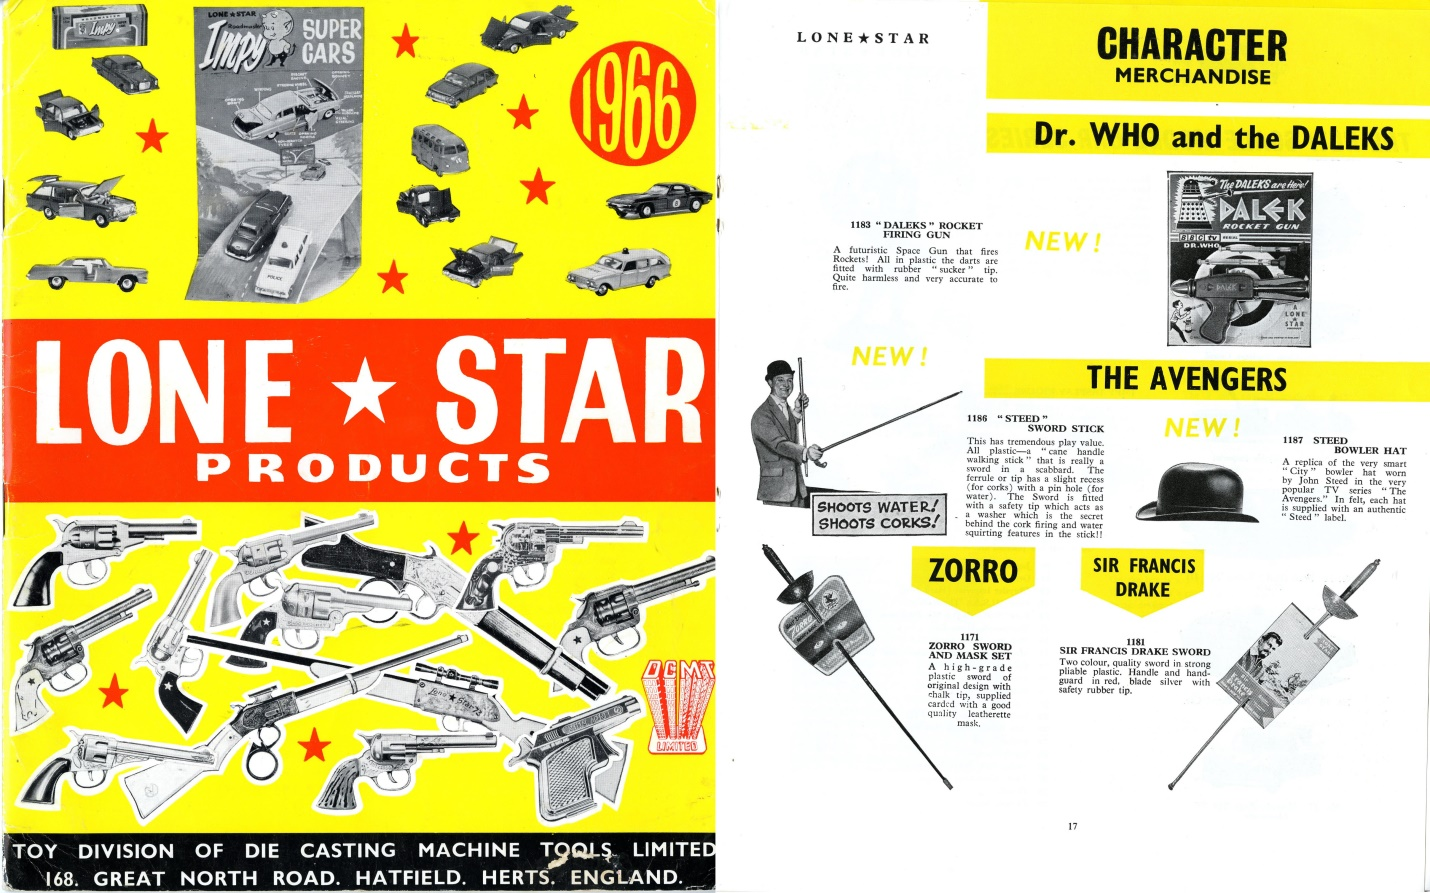 Lone Star Products 1966 Catalogue featuring the Dalek Rocket Gun